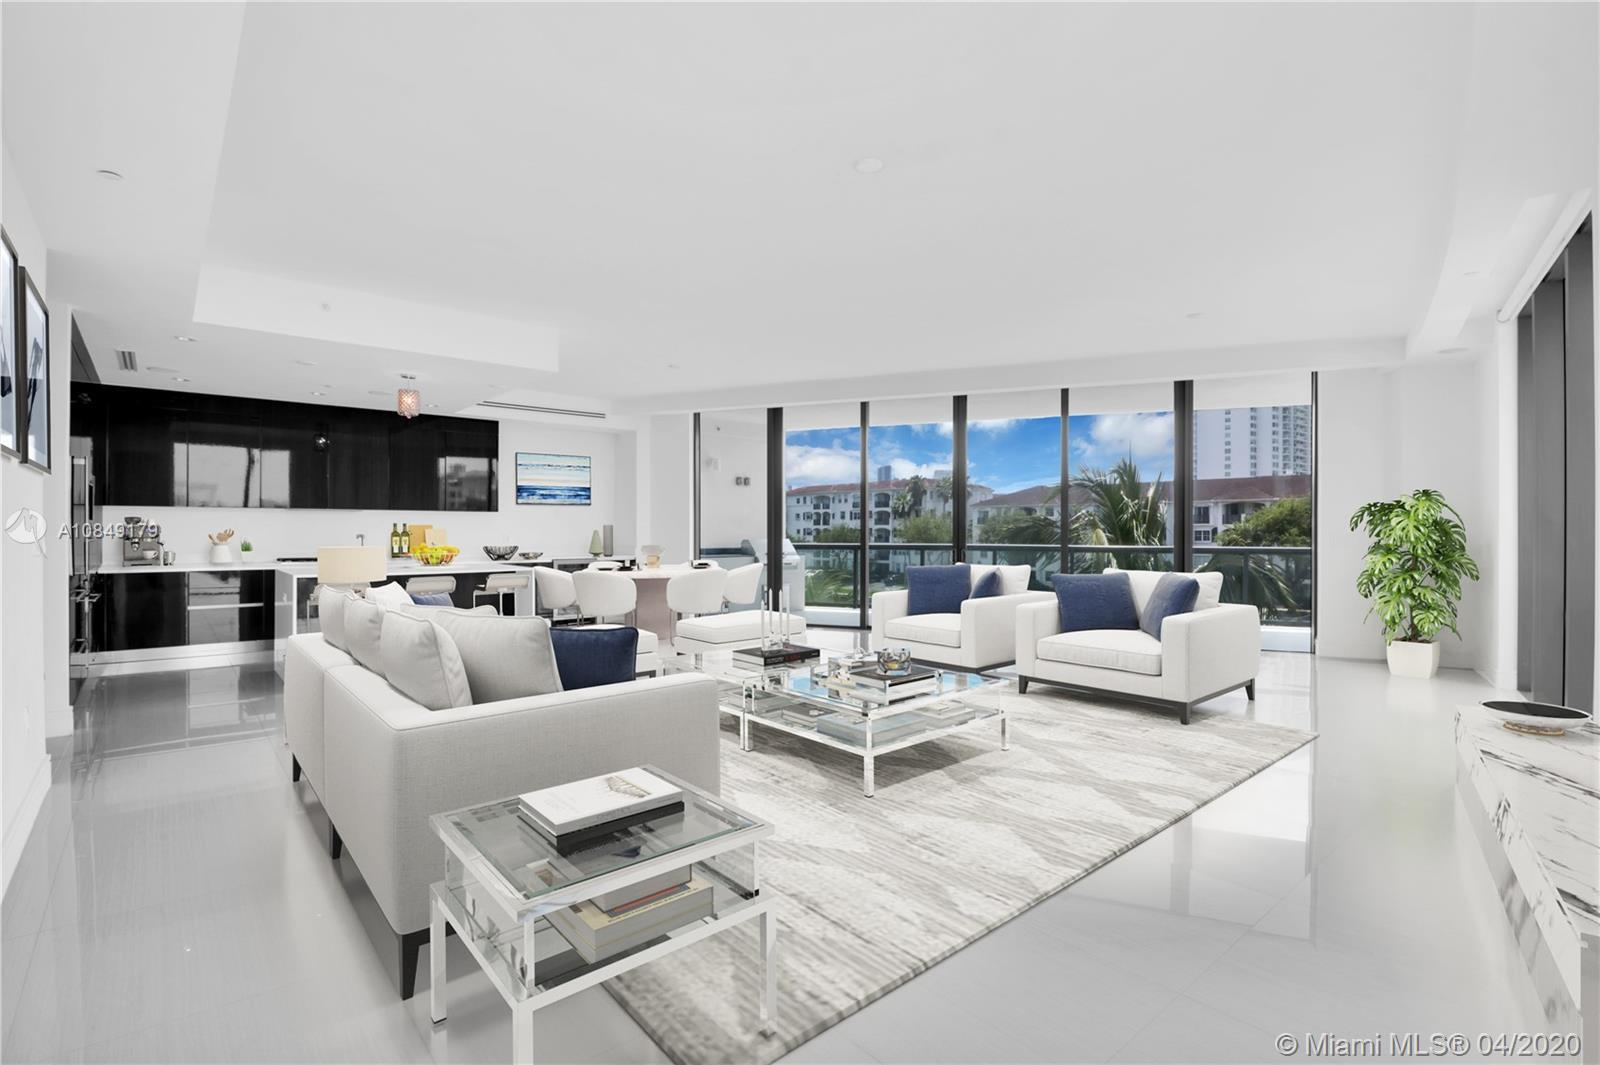 Located seconds from Aventura Town Center, Aventura Mall, Founders Park, and beaches this modern flo